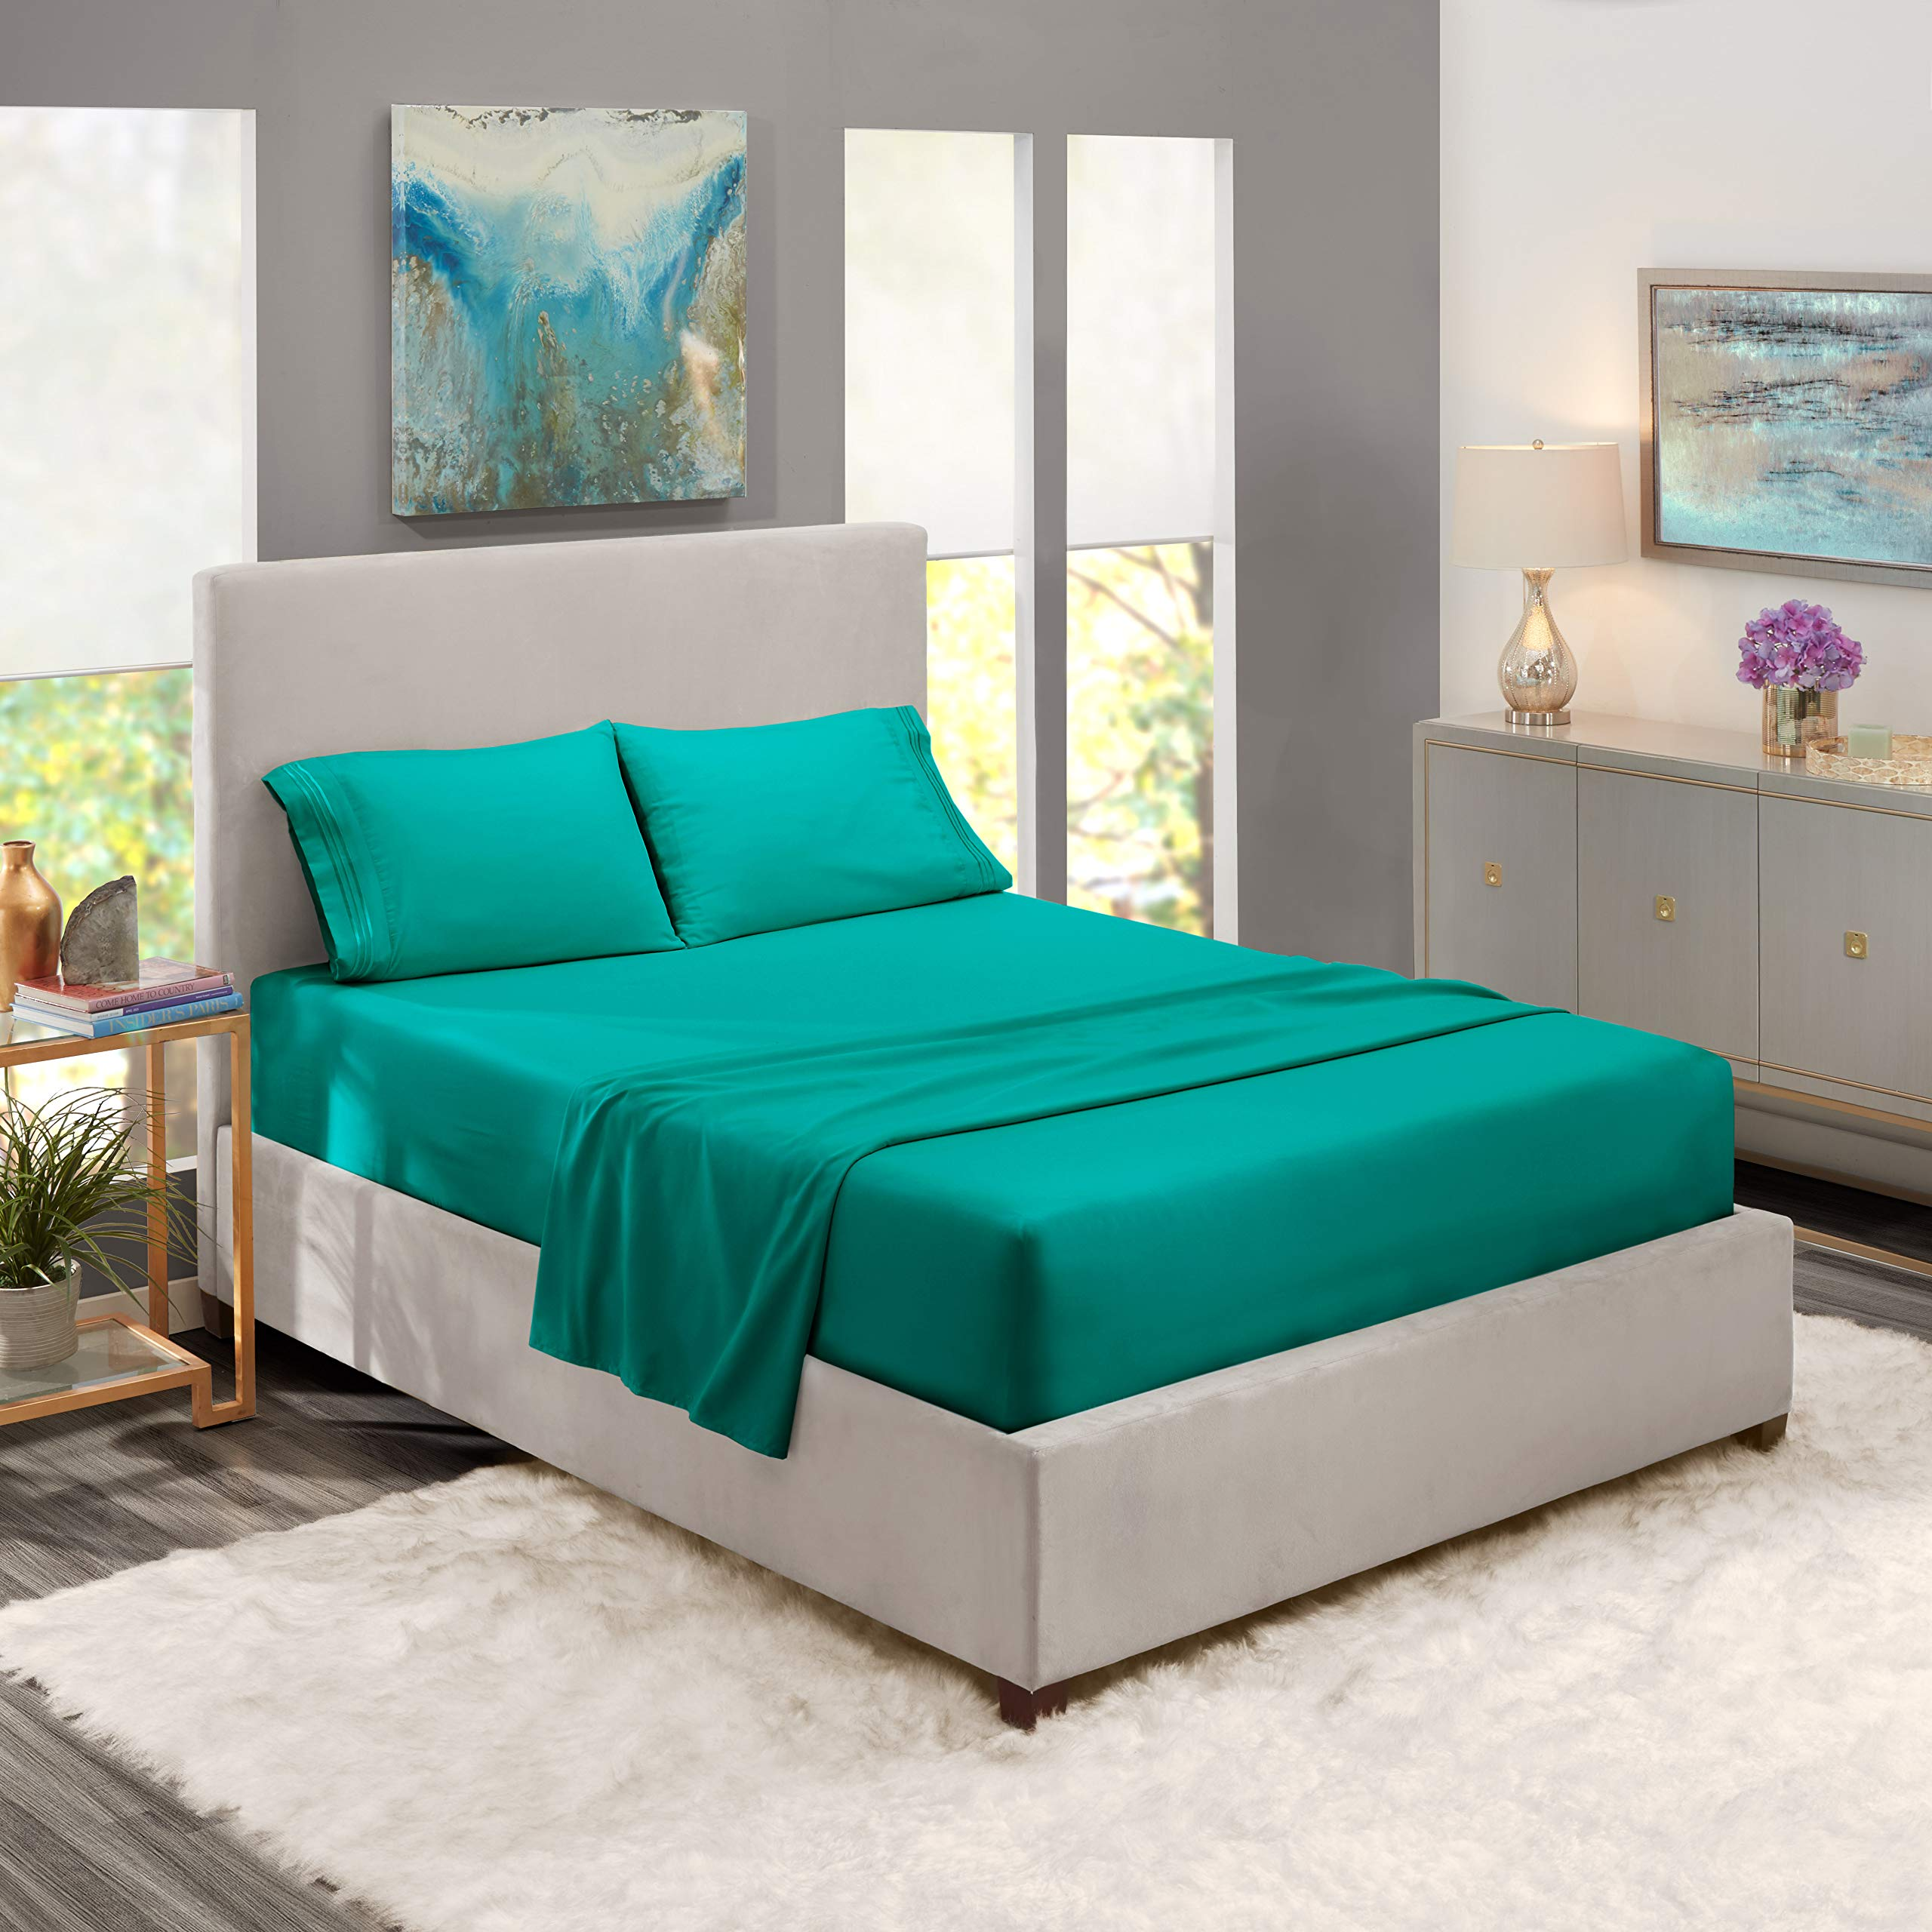 Nestl Bedding Soft Sheets Set - 4 Piece Bed Sheet Set, 3-Line Design Pillowcases - Easy Care, Wrinkle Free - Good Fit Deep Pockets Fitted Sheet - Free Warranty Included - Queen, Teal by Nestl Bedding